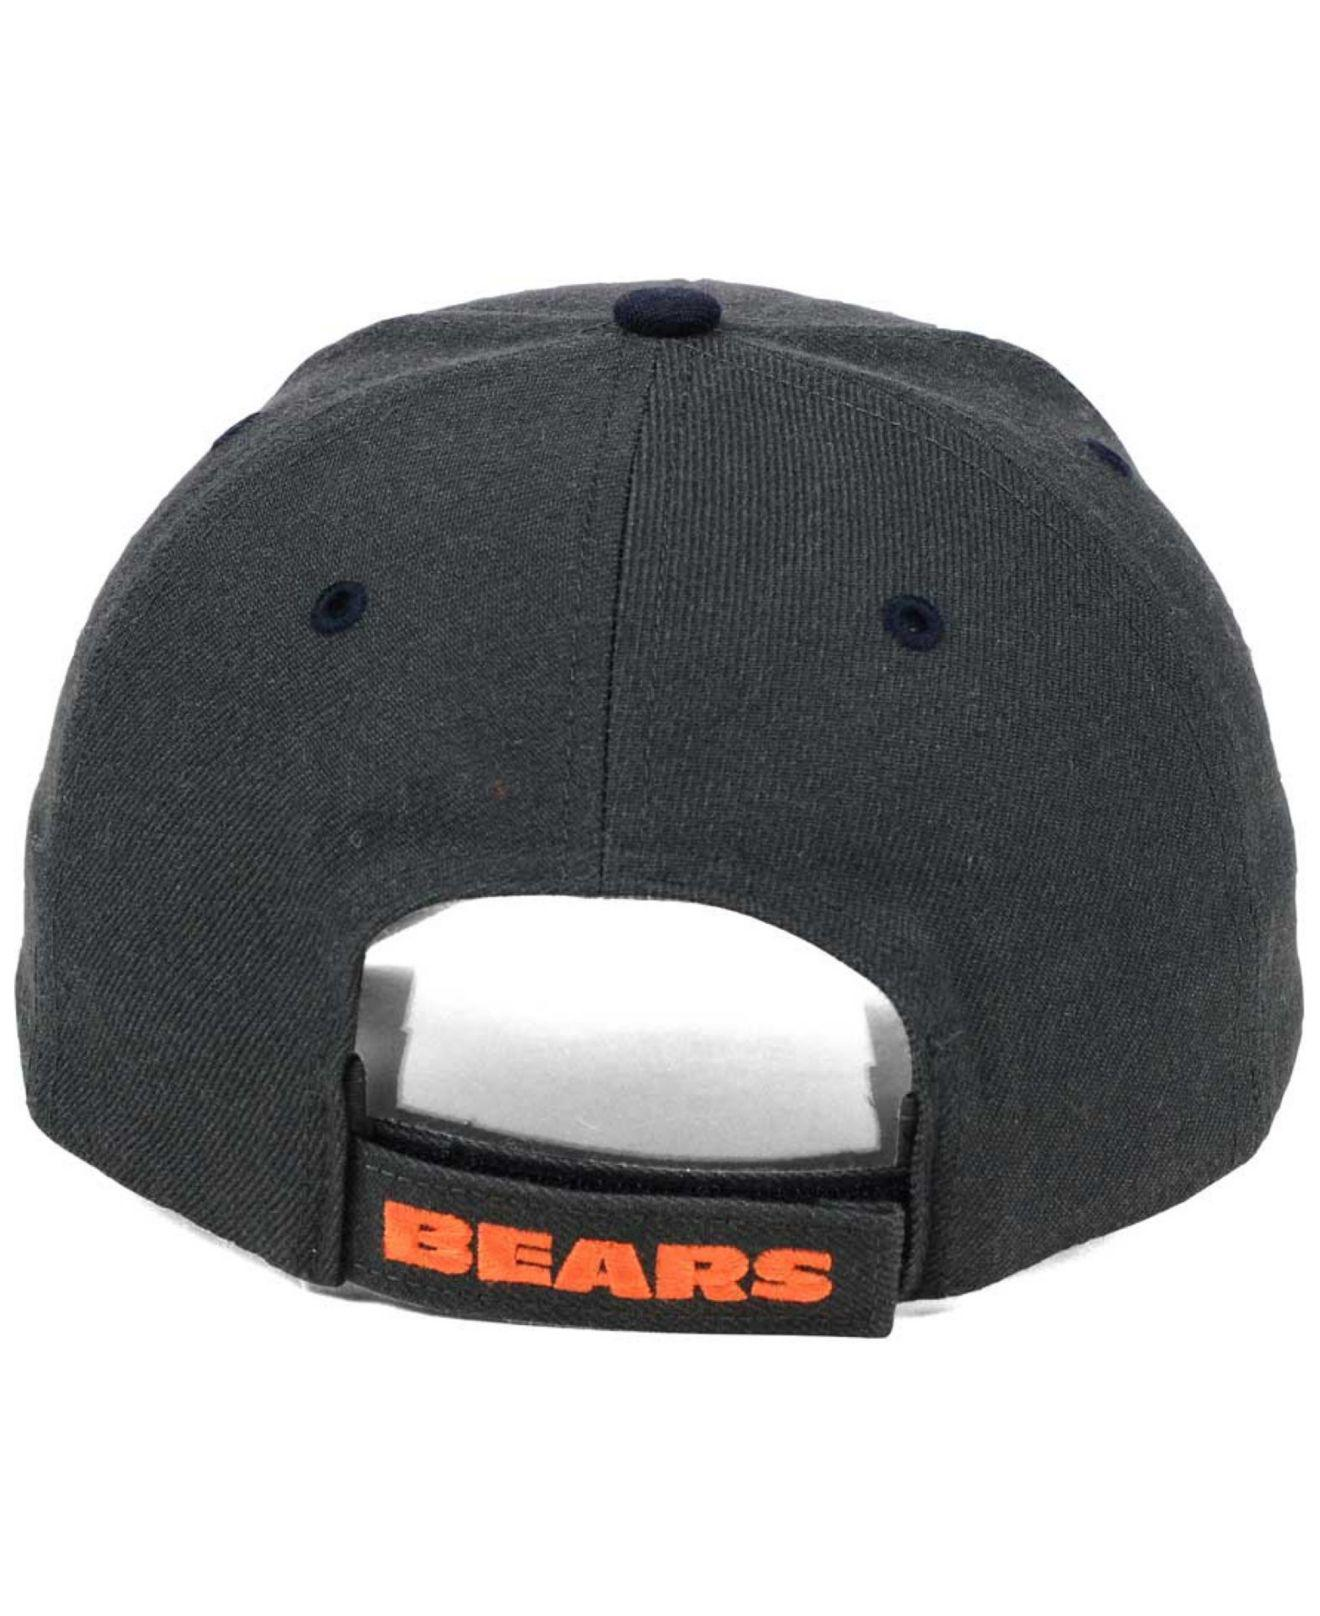 quality design d5c91 ac4b9 italy lyst 47 brand chicago bears audible mvp cap in blue for men 3ee72  70bf4